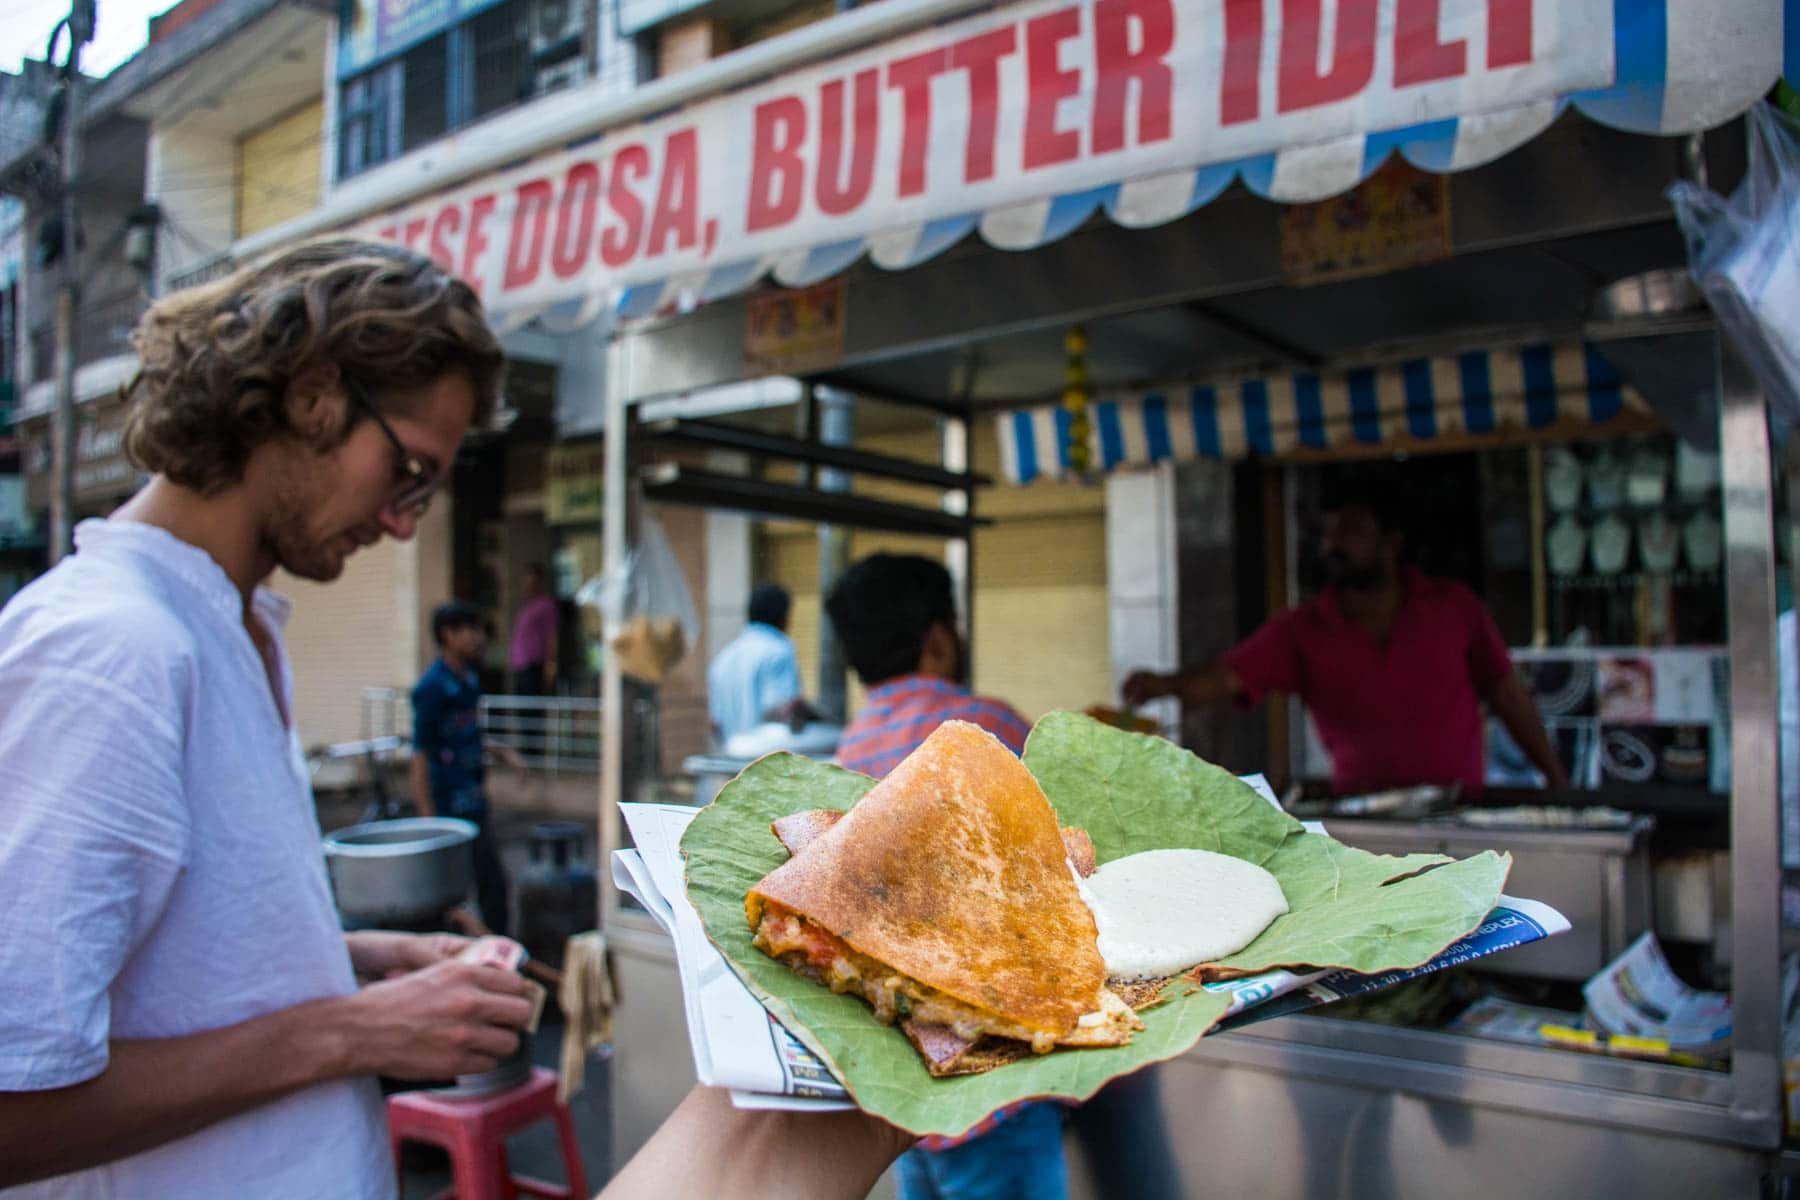 Why dual pricing is unfair - A street food dosa in Hyderabad, India - Lost With Purpose